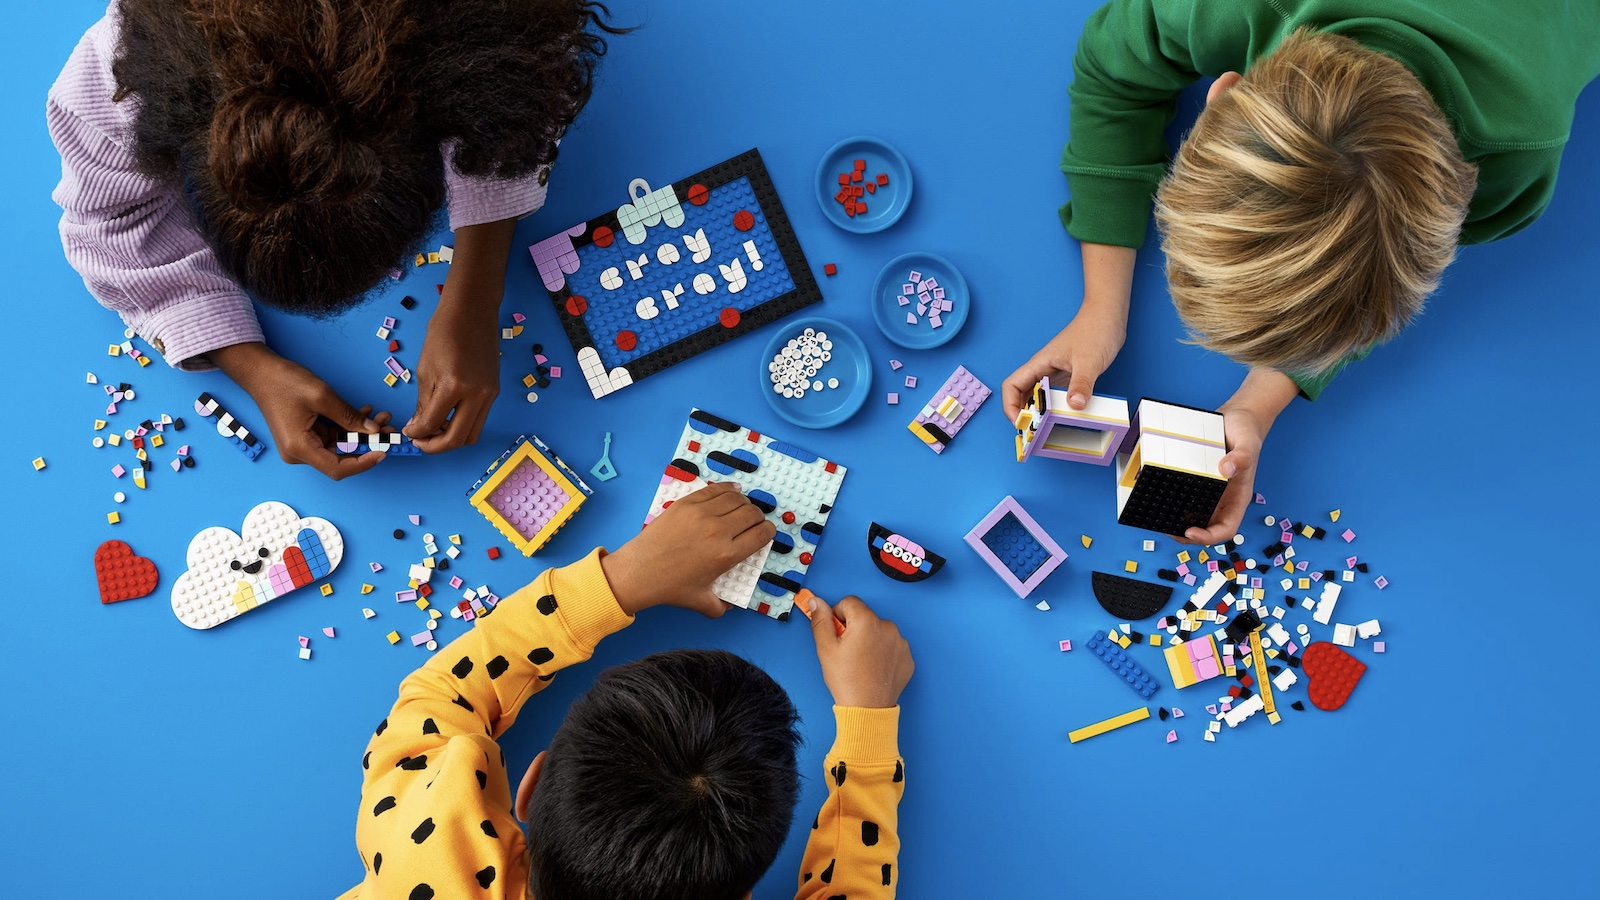 LEGO DOTS Creative Designer Box building set has everything kids and adults need to create